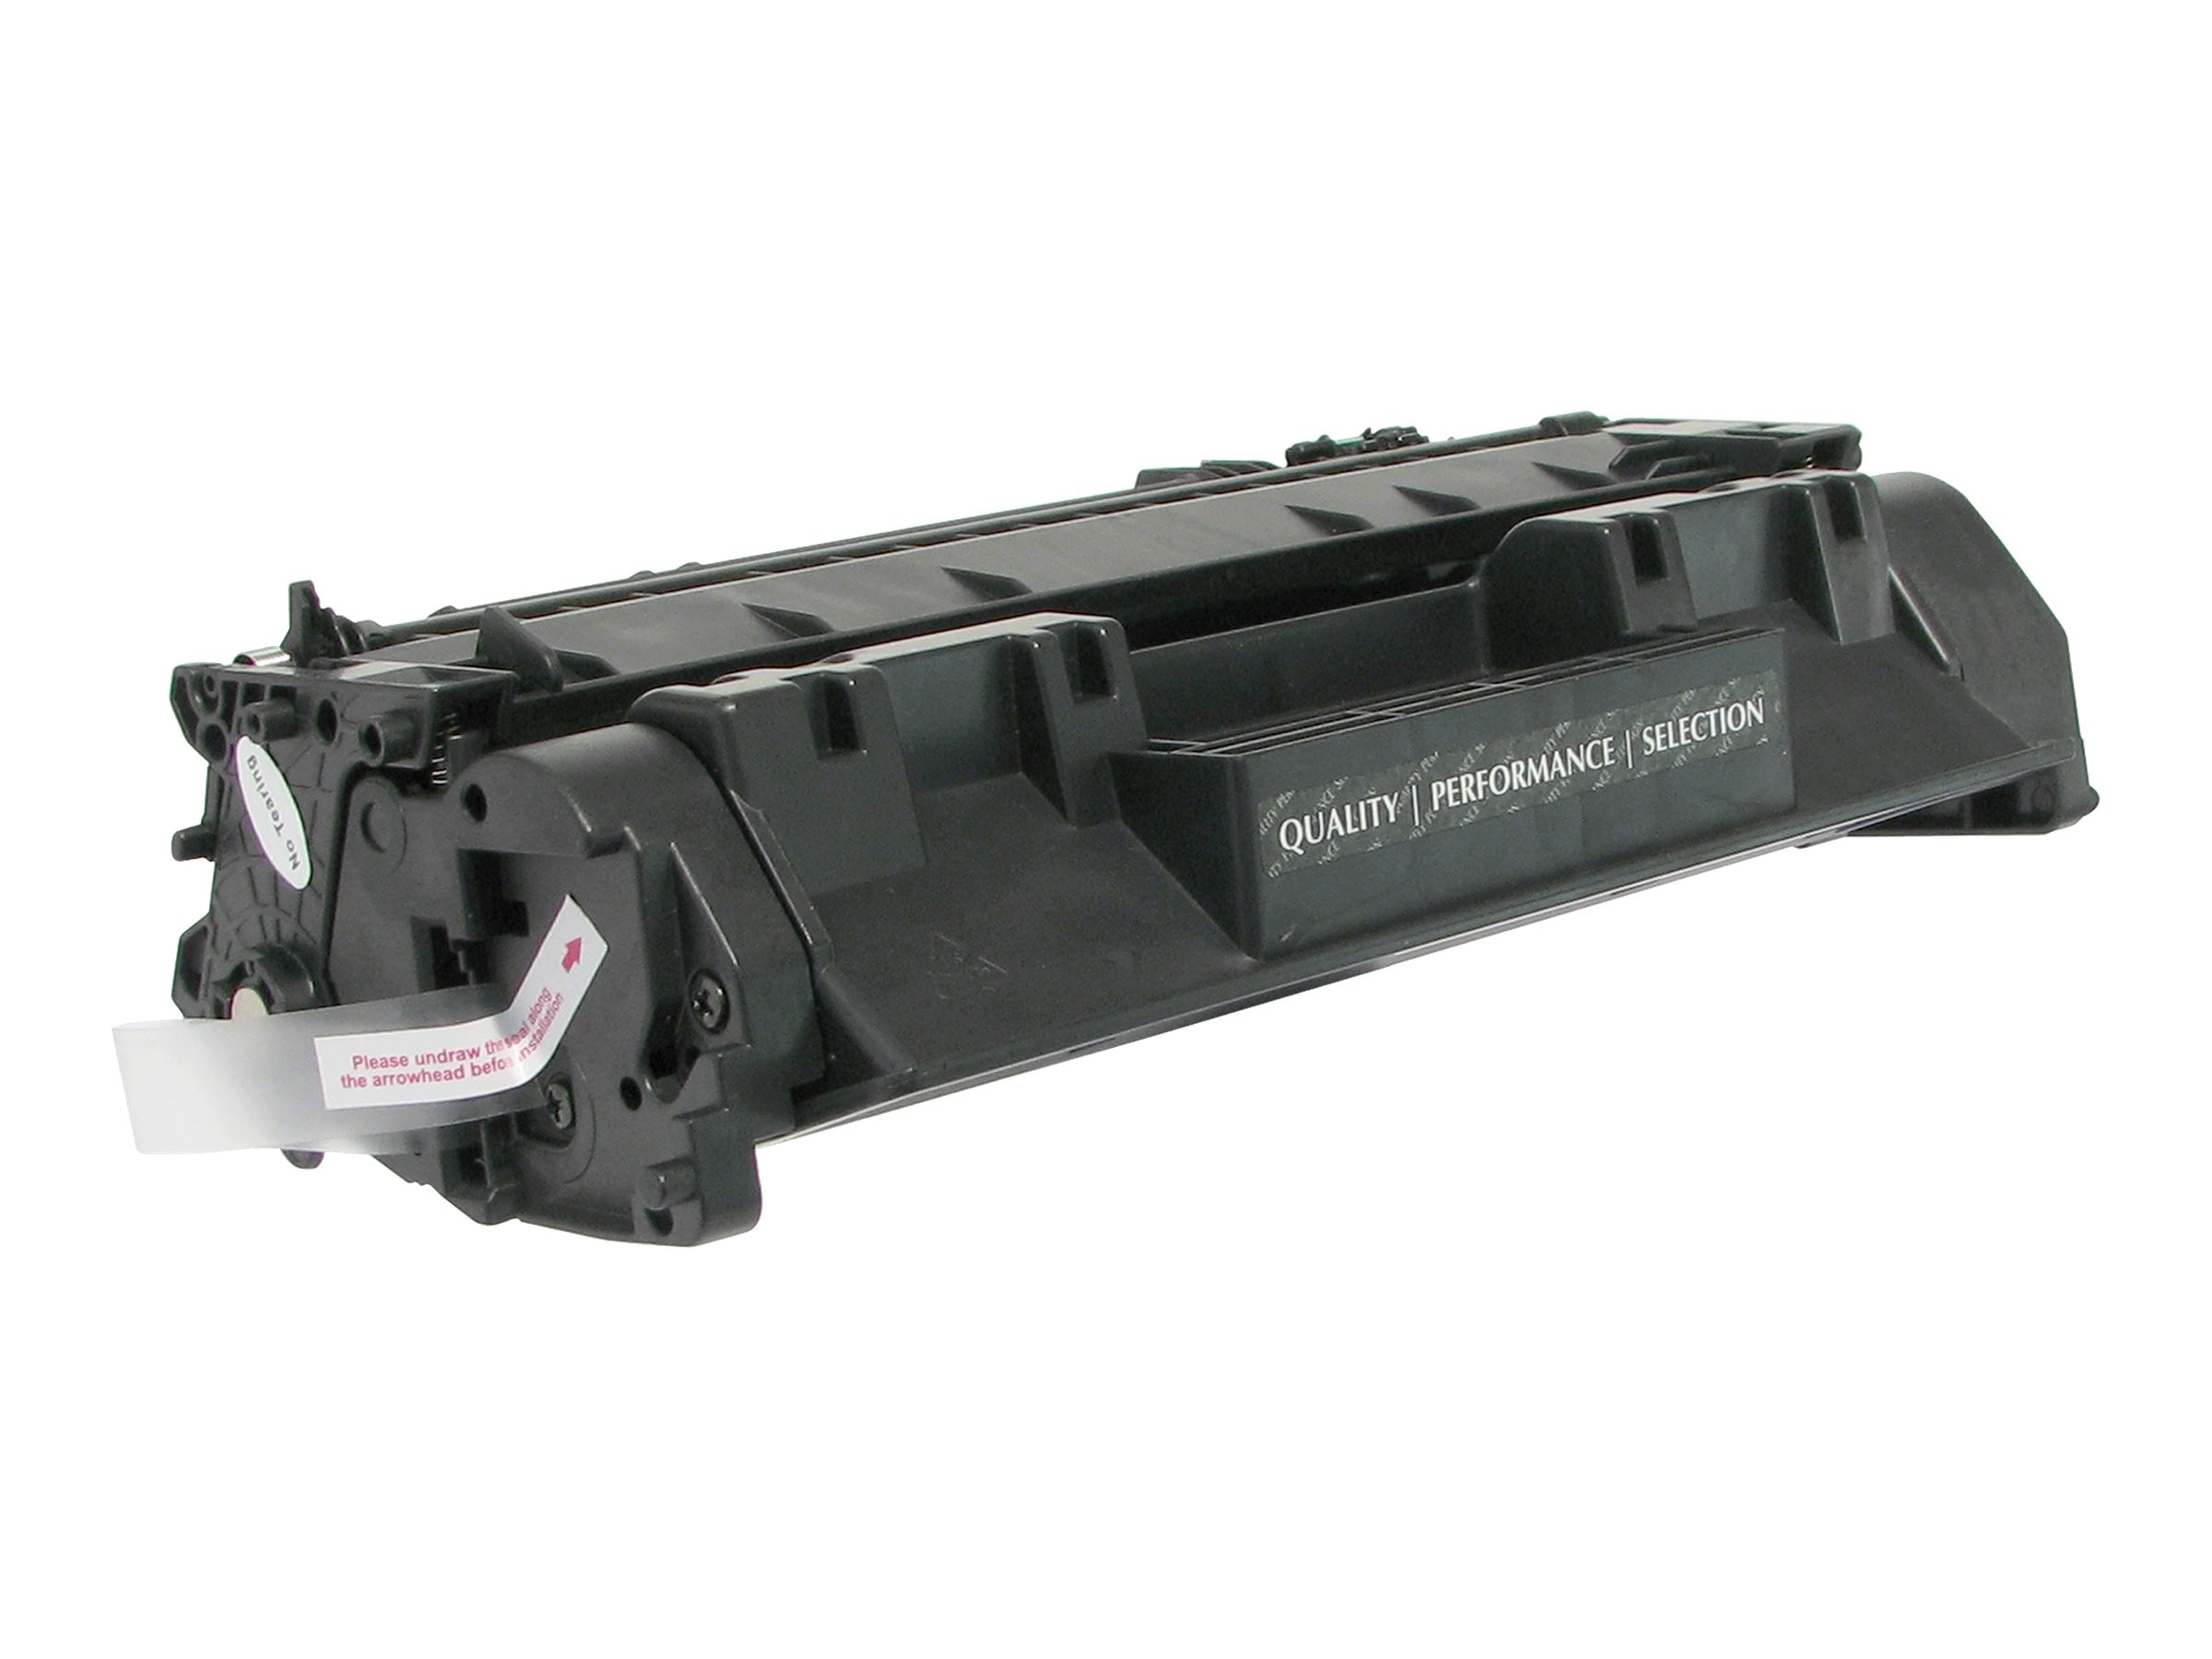 V7 CF280A Black Toner Cartridge for HP LaserJet Pro 400 M401 M425 Series, V780A, 17335481, Toner and Imaging Components